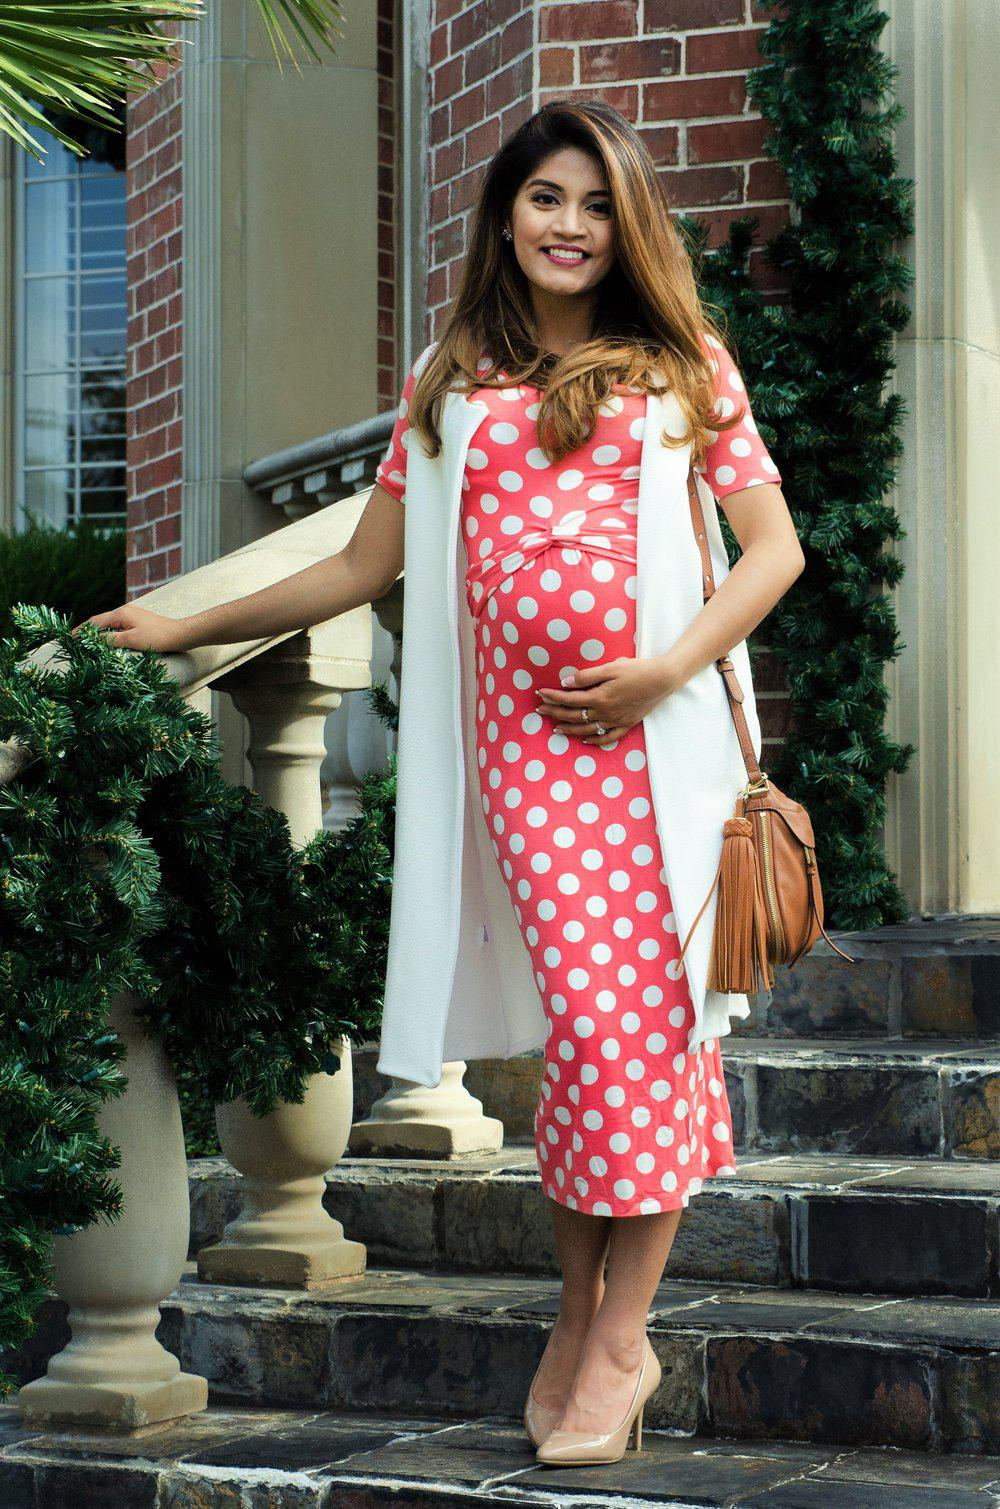 Polka dot maternity dresses 2017 black blue red pink pink polka dot maternity dress ombrellifo Gallery